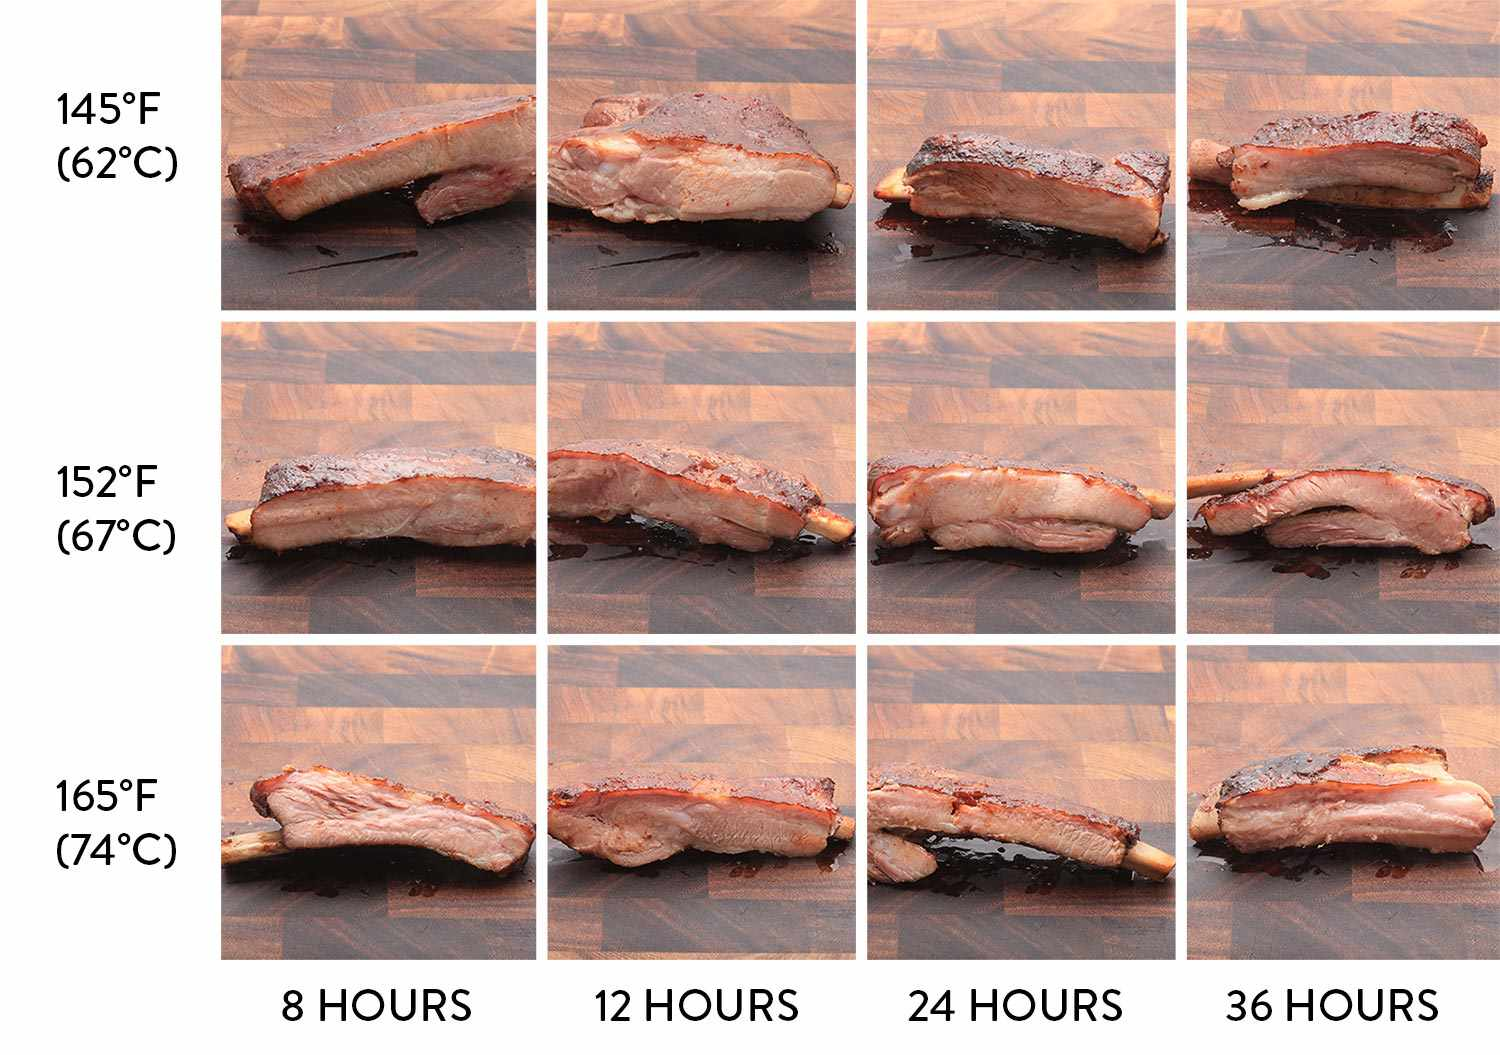 Chart showing pork ribs that have been cooked sous vide for various lengths of time at various temperatures